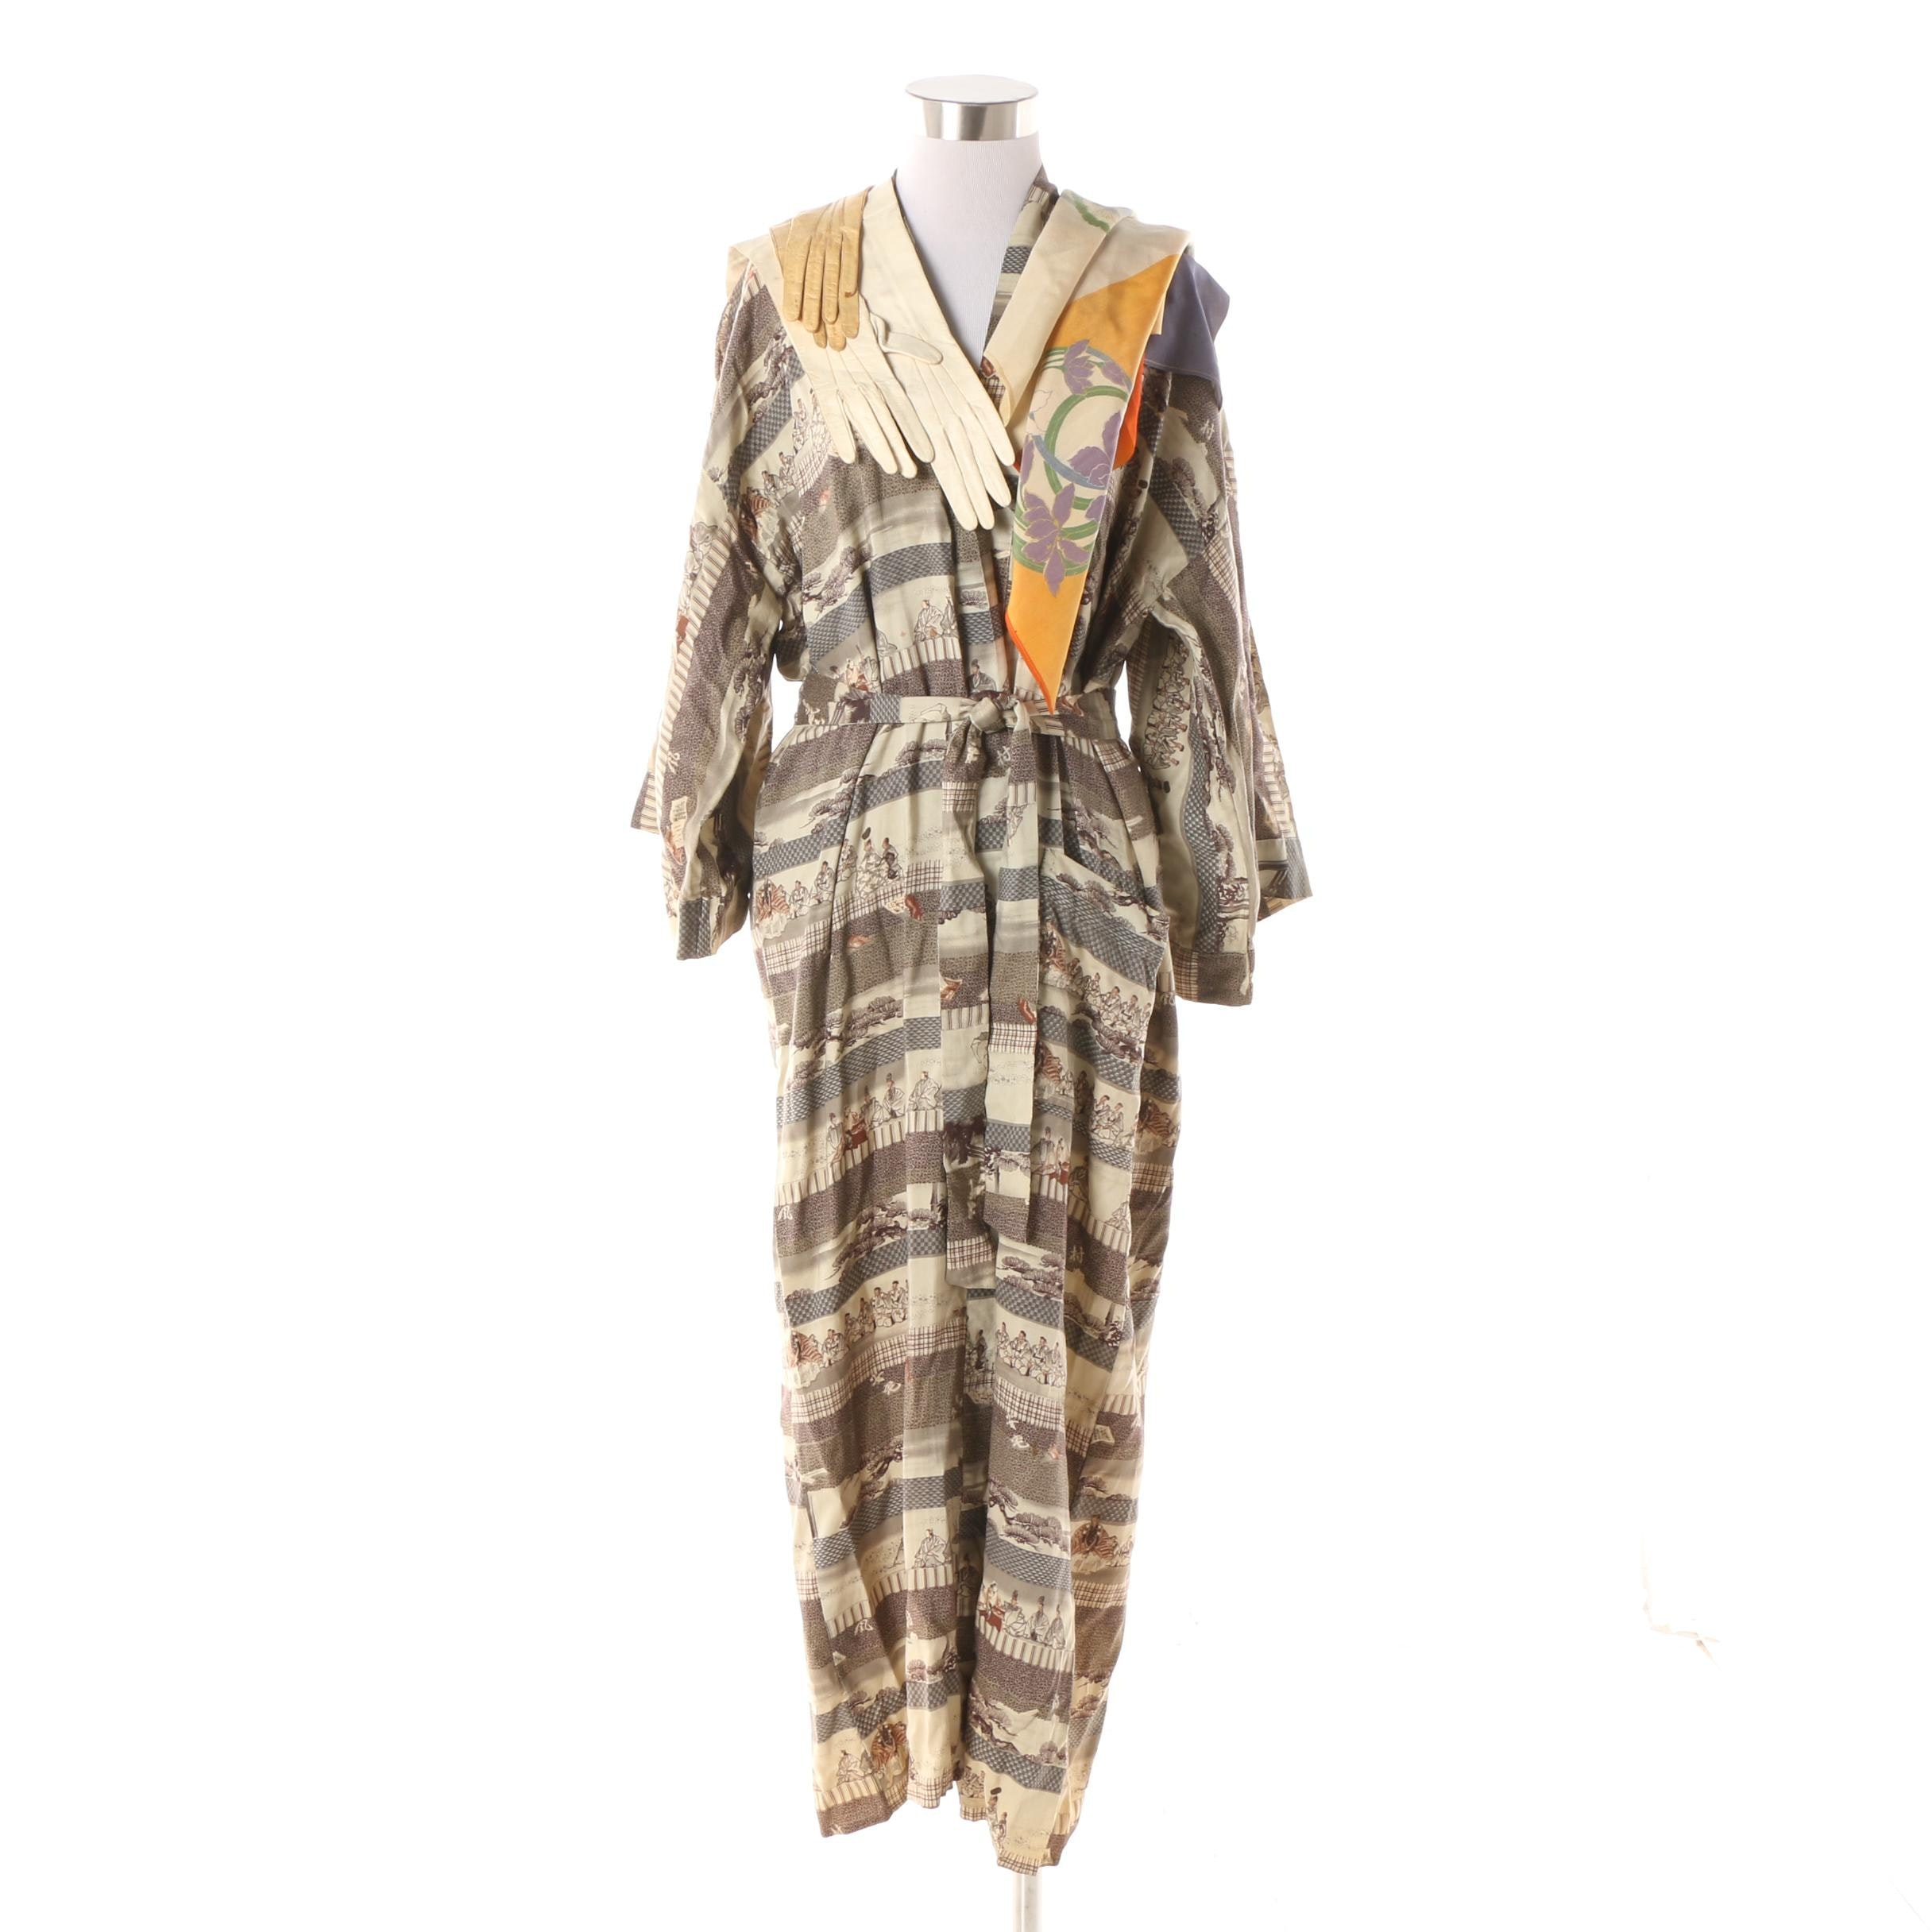 Vintage Japanese Silk and Cotton Blend Robe with Silk Scarf and Leather Gloves